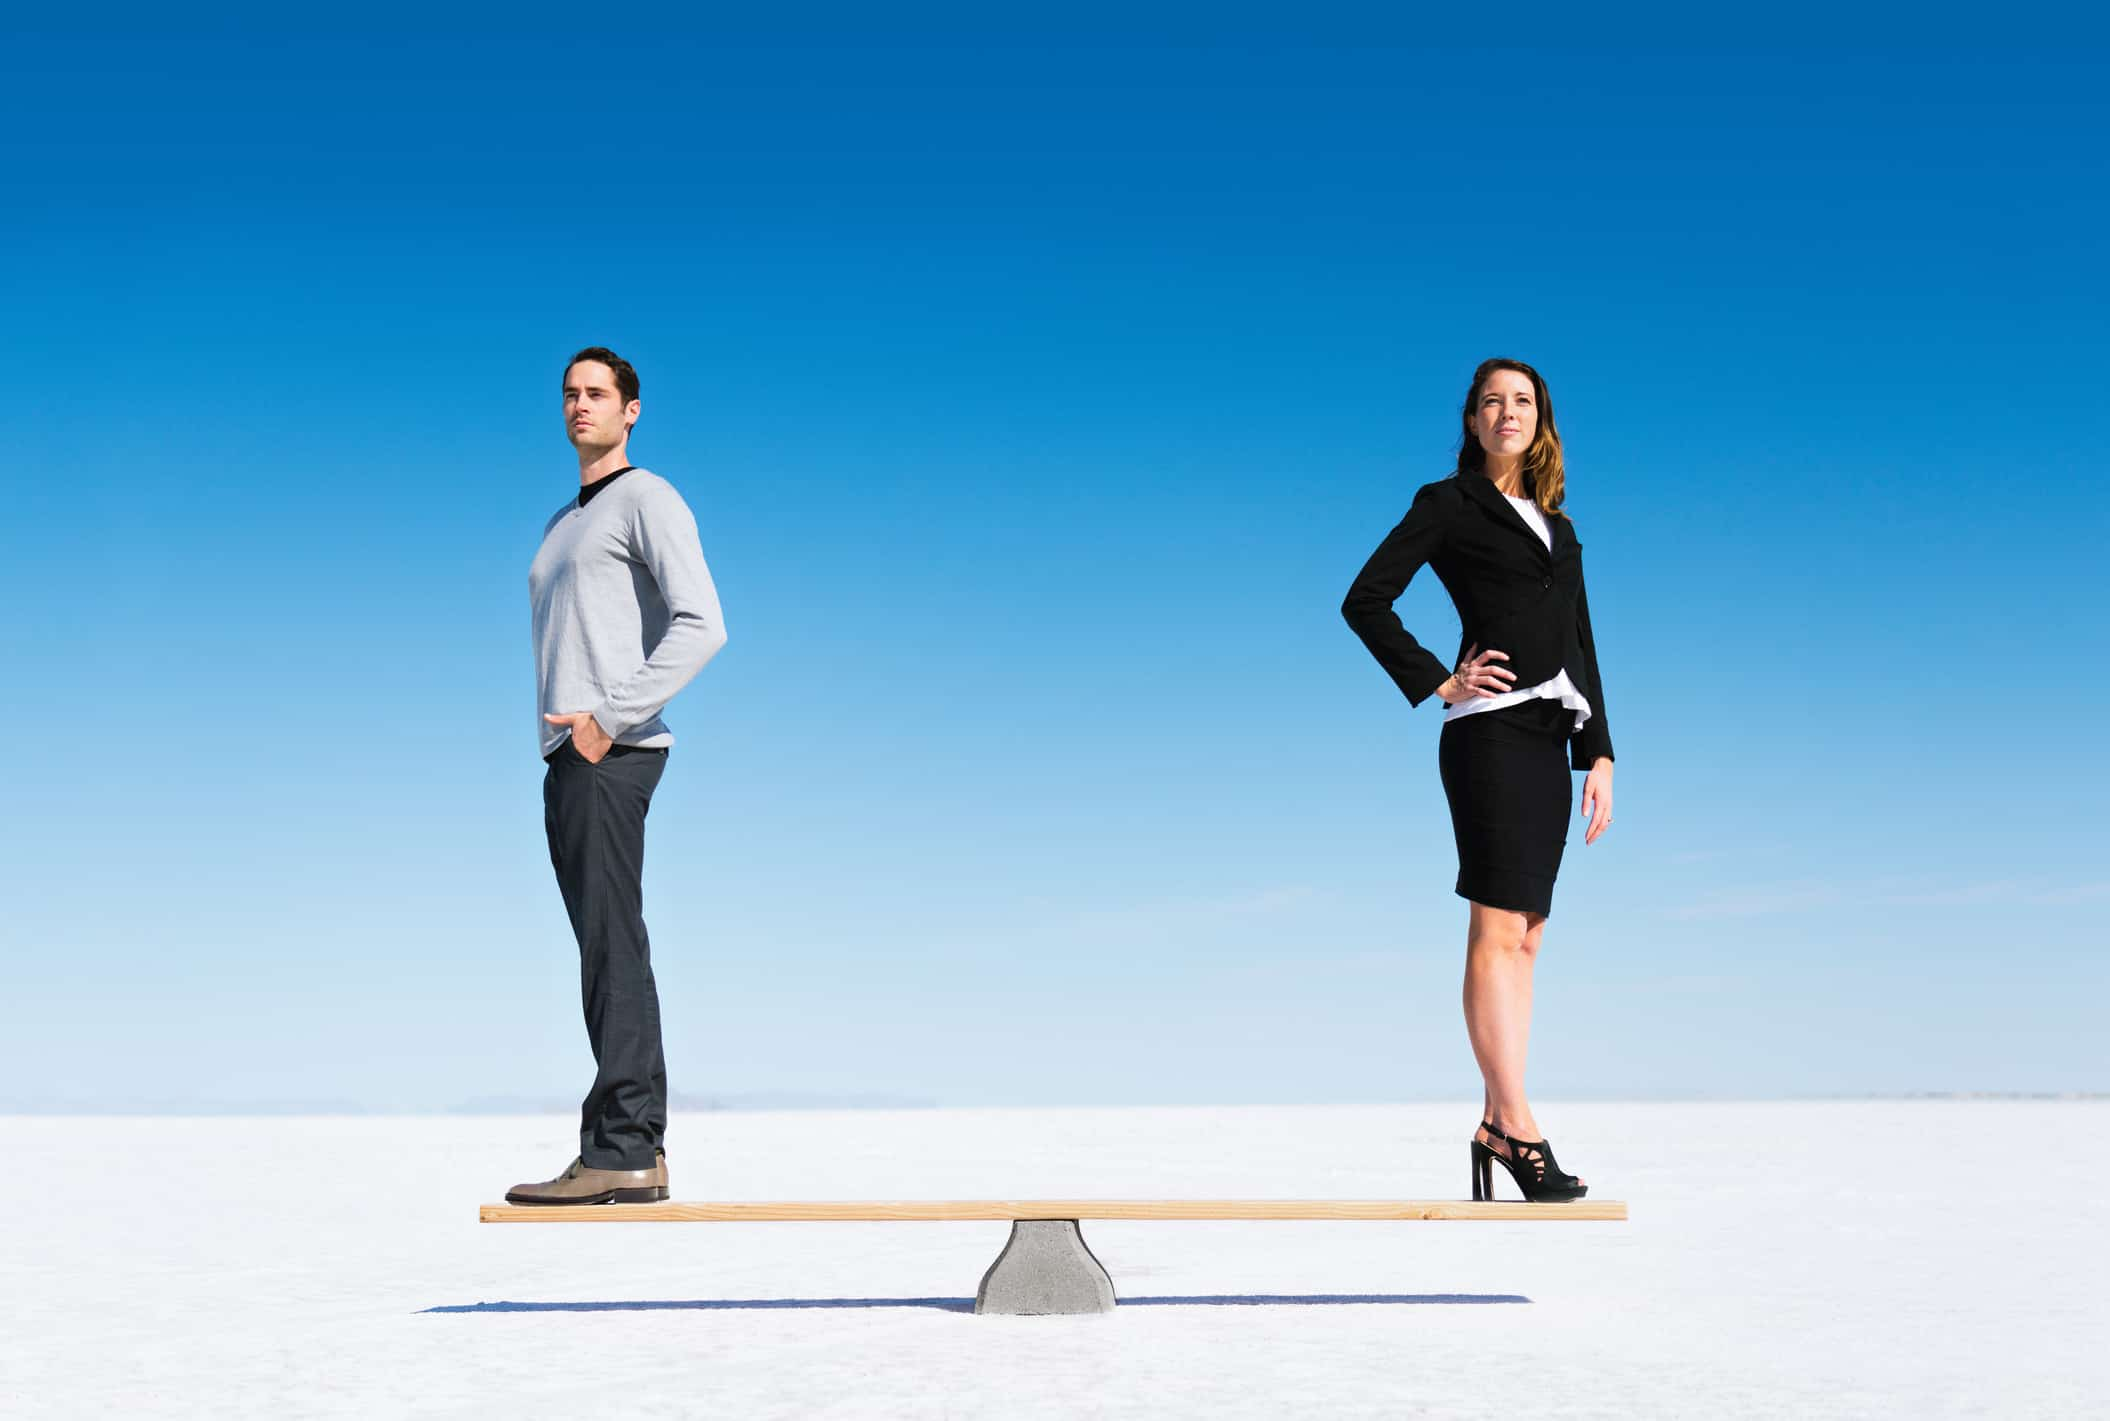 Businesswoman and businessman balanced on Seesaw.